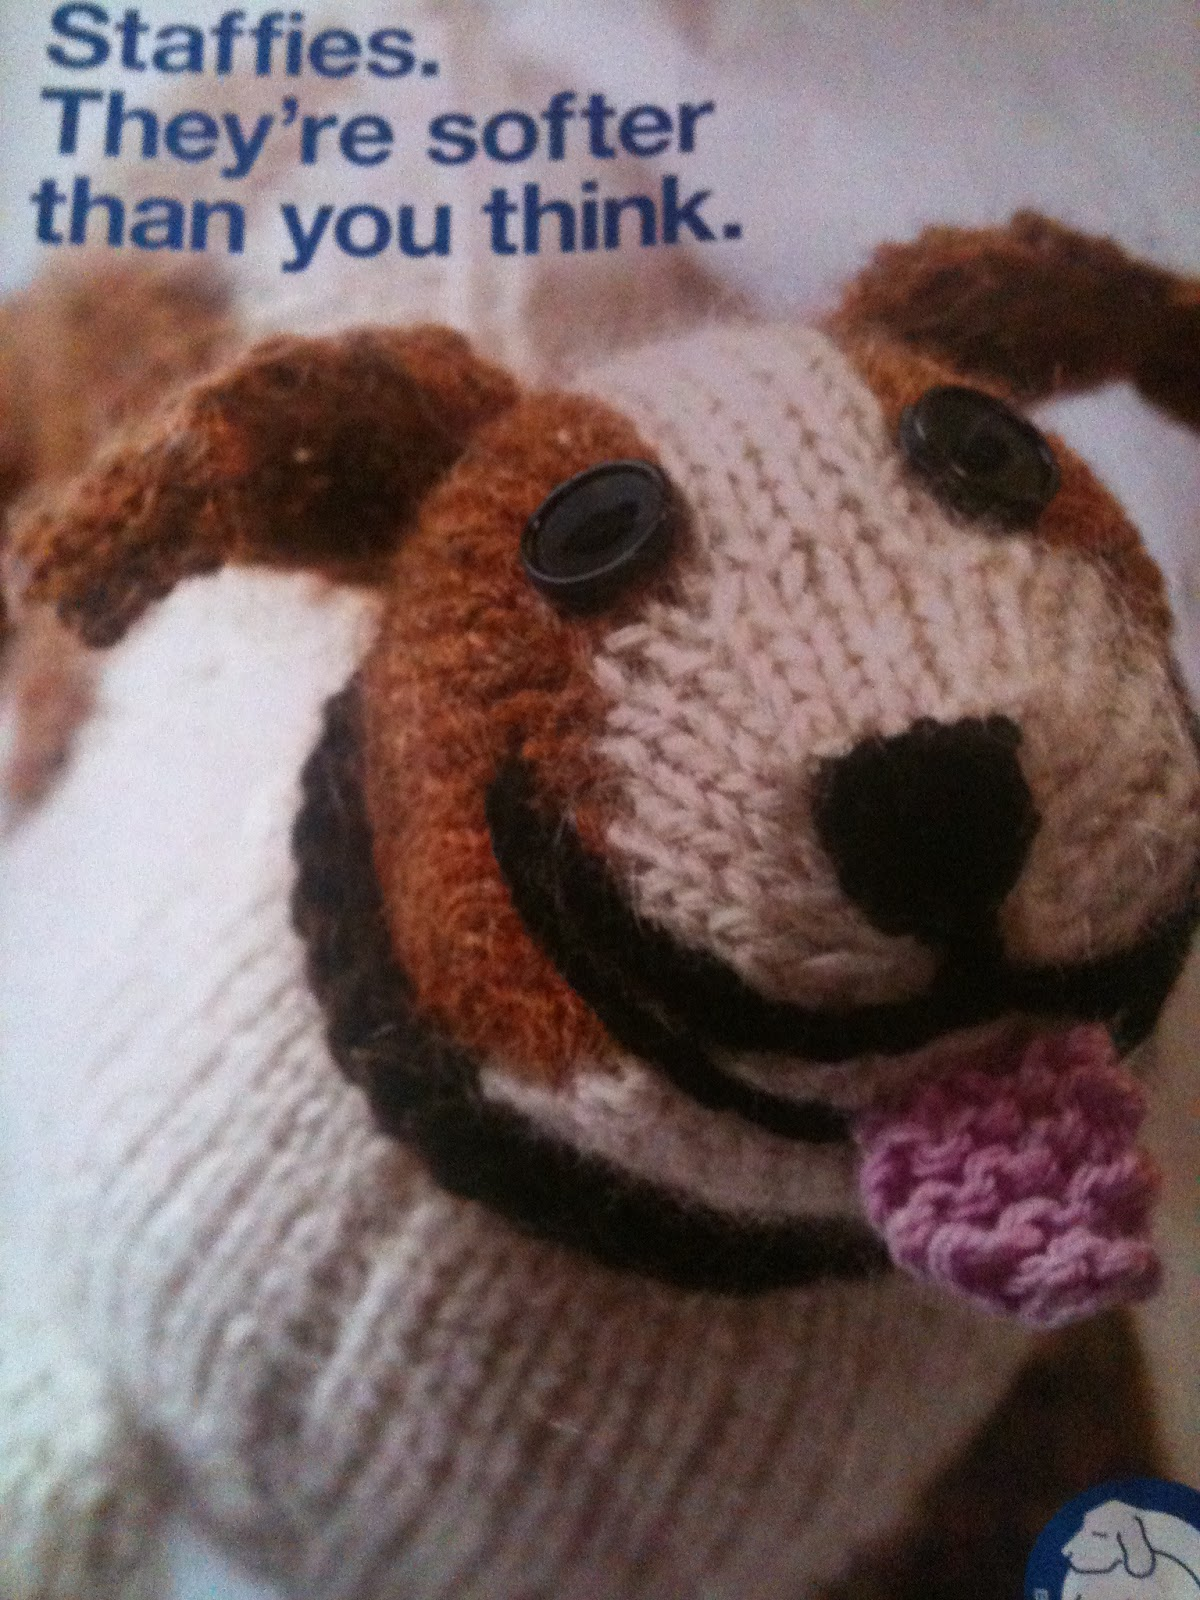 Rspca Knitting Patterns For Dogs : Cute Knitting: So much to say, sooooo little time.